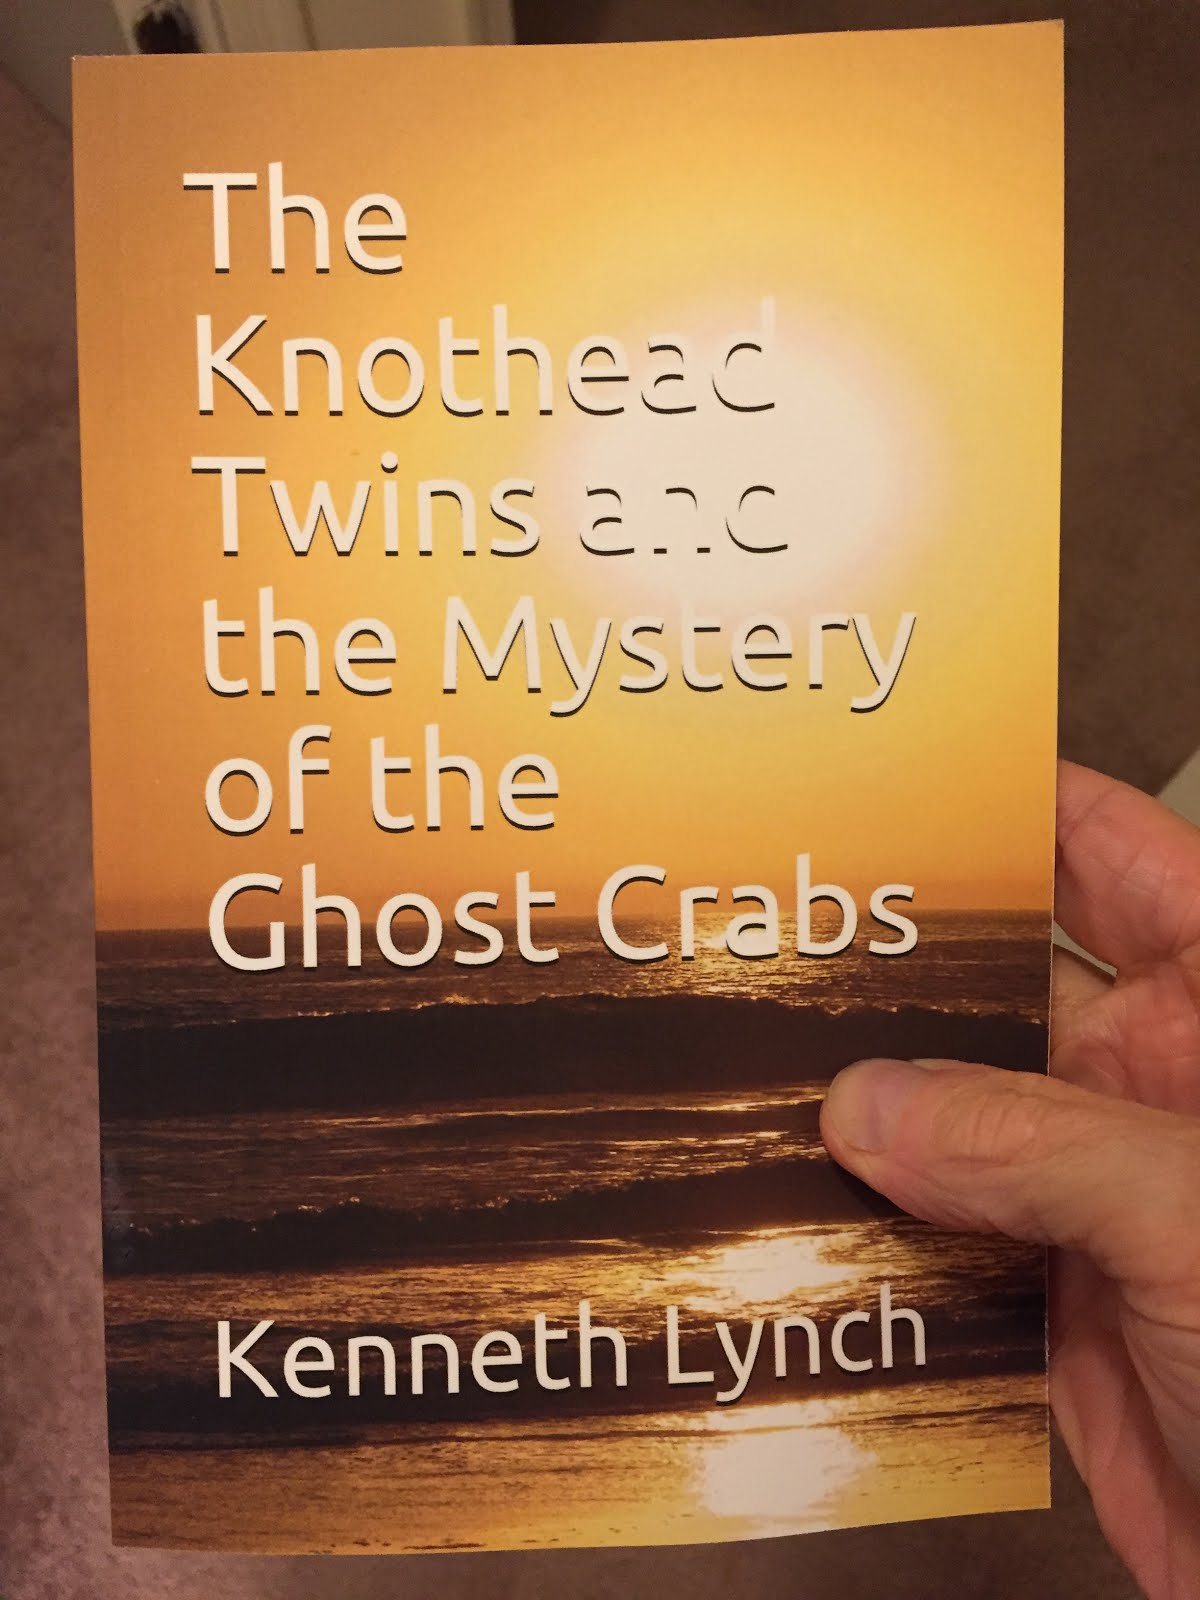 The Knothead Twins and the Mystery of the Ghost Crabs